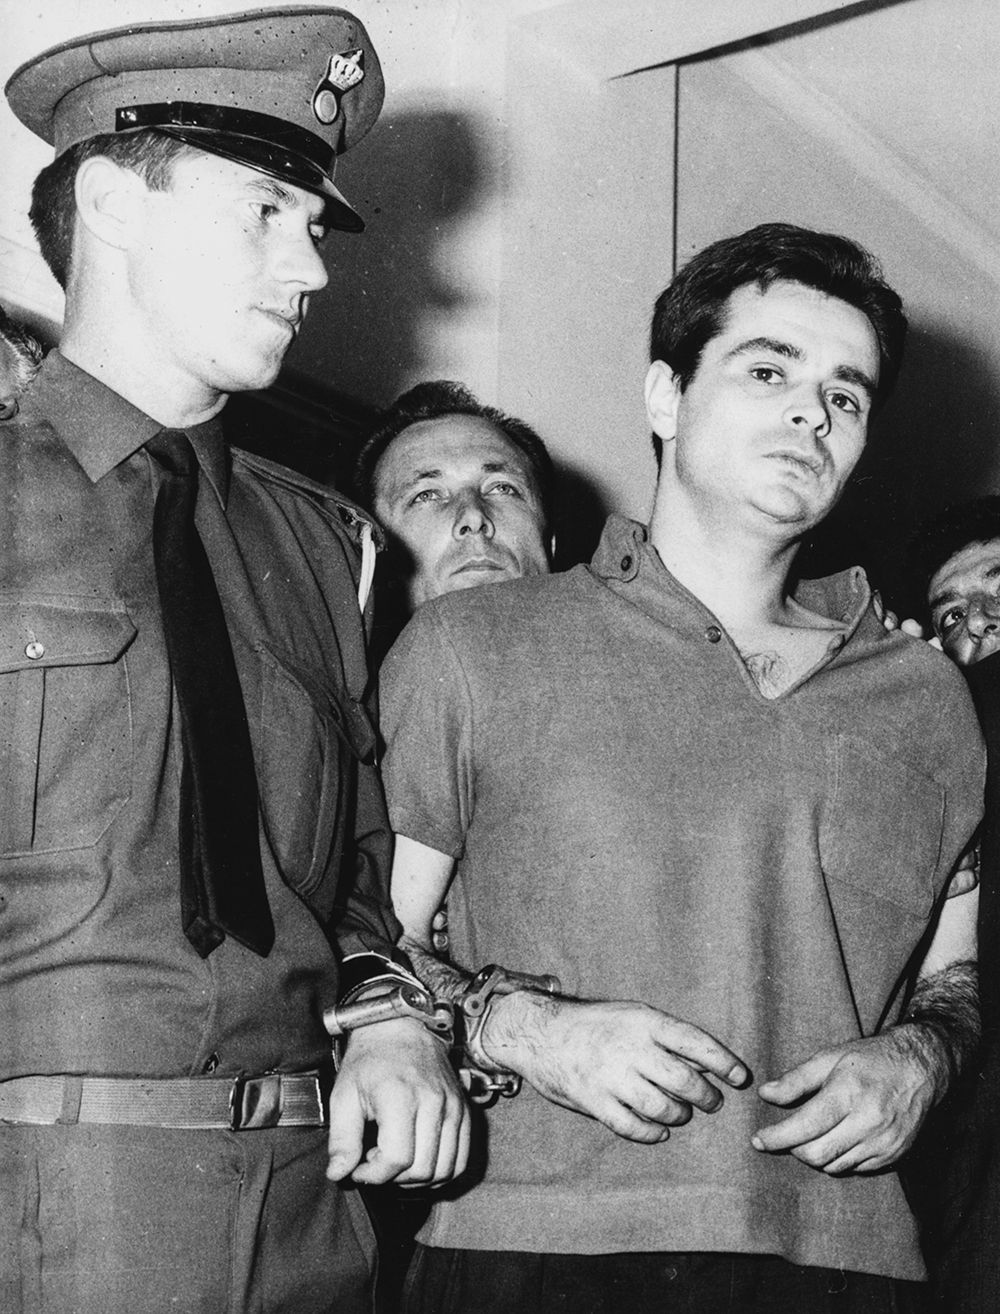 Alexandros Panagoulis being led away by an officer in military court after being sentenced to death for his assassination attempt on George Papadopoulos, 1968. Printed following the funeral of Alexandros Panagoulis after his death in a car crash on May 10th 1976. (Photo by Keystone/Hulton Archive/Getty Images)